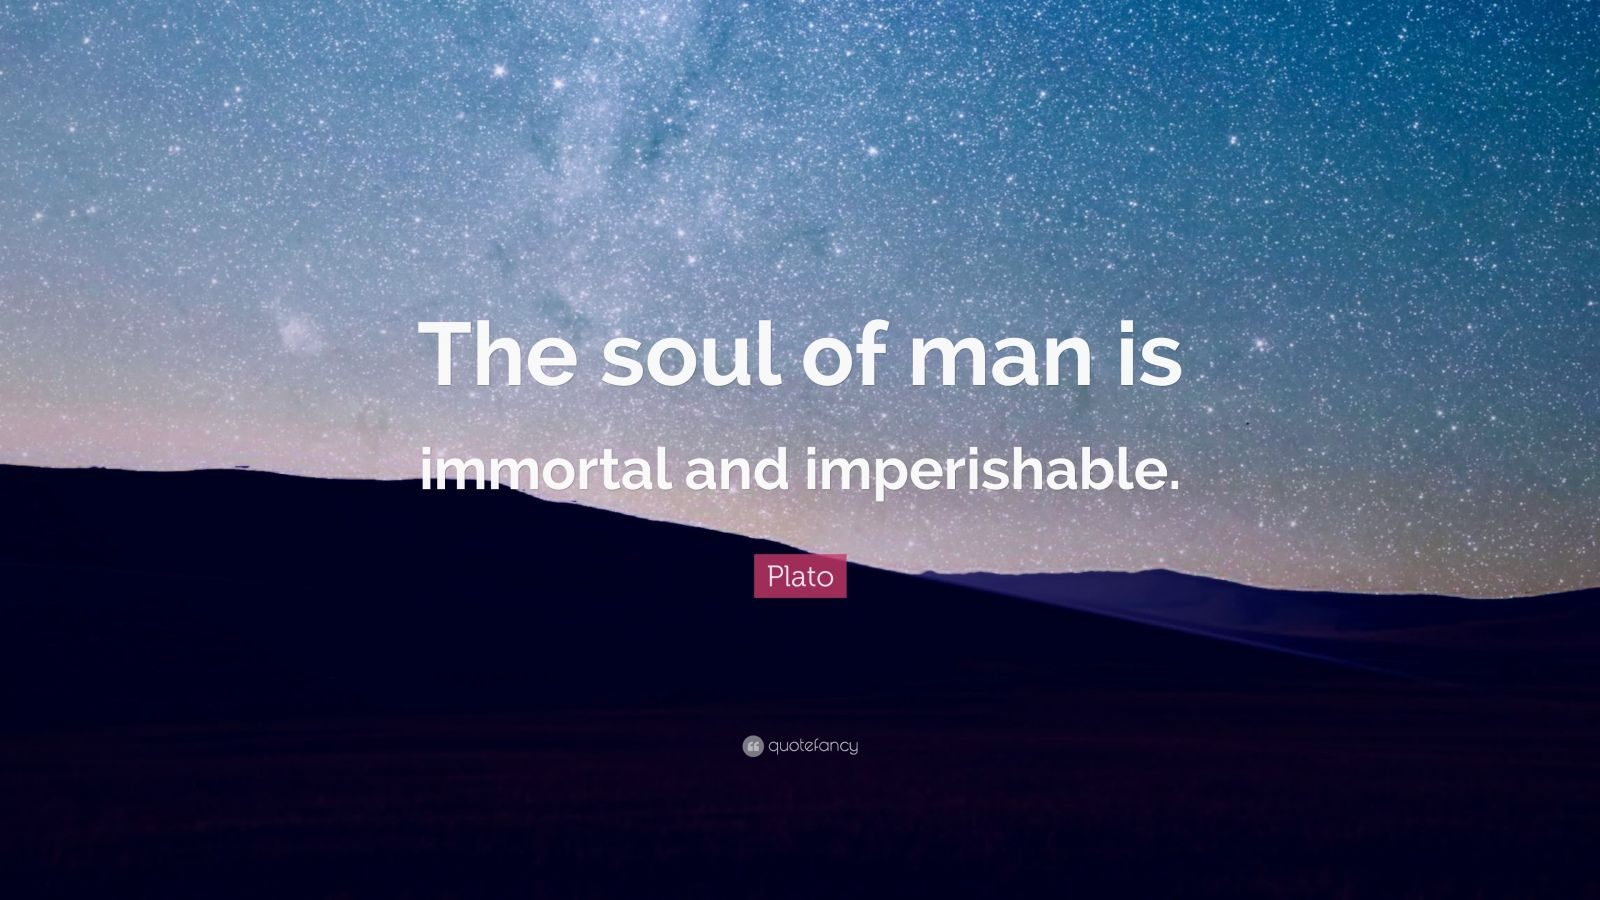 Plato's Immortality of the Soul